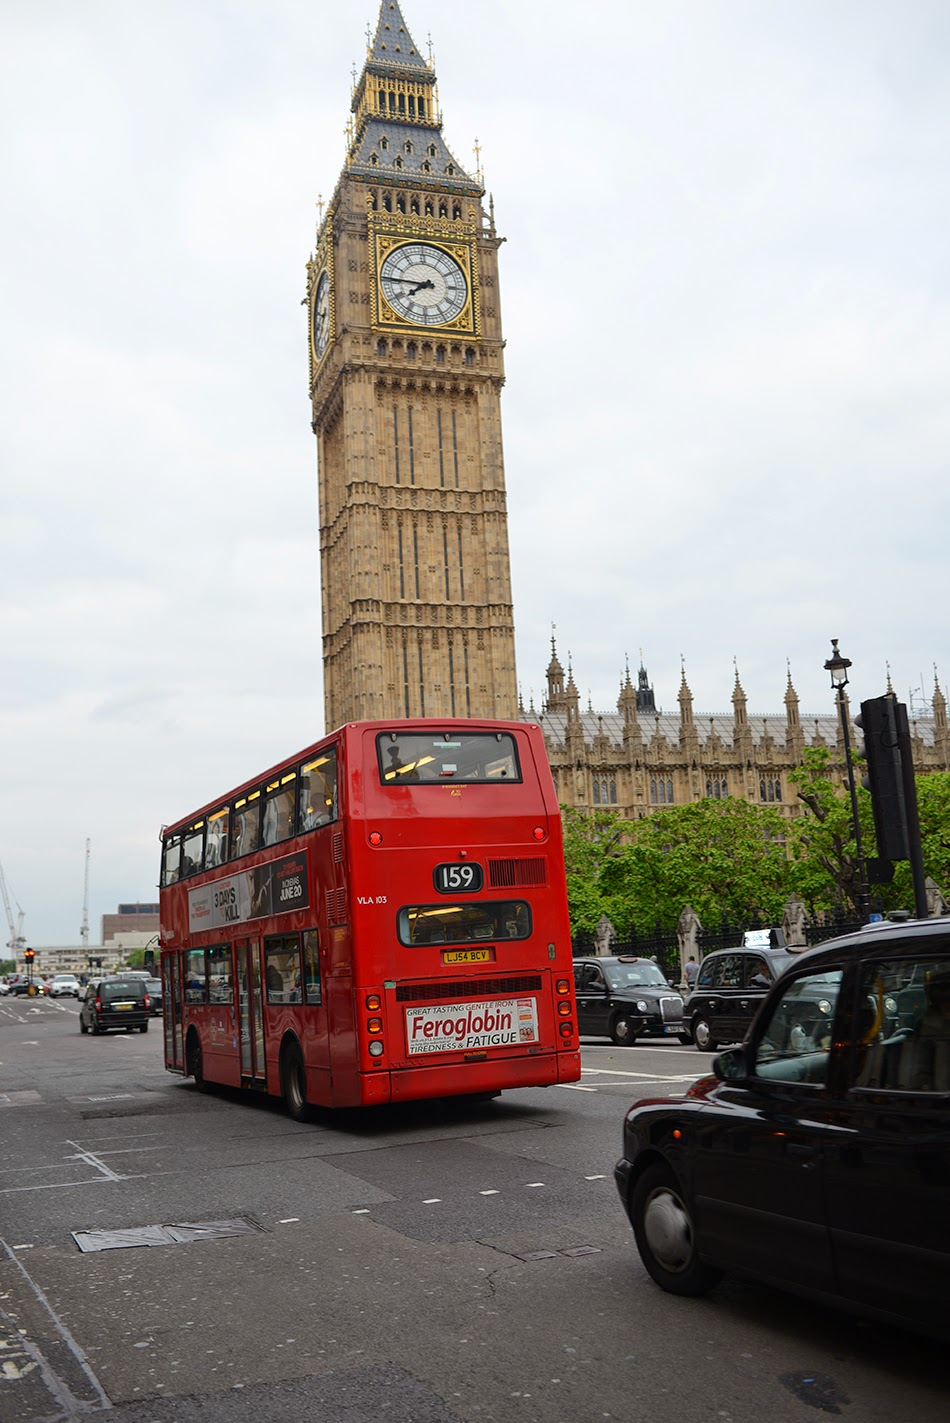 small resolution of arriving back to one of my favorite places ever london the double decker red bus s phone booths and architecture just get me going